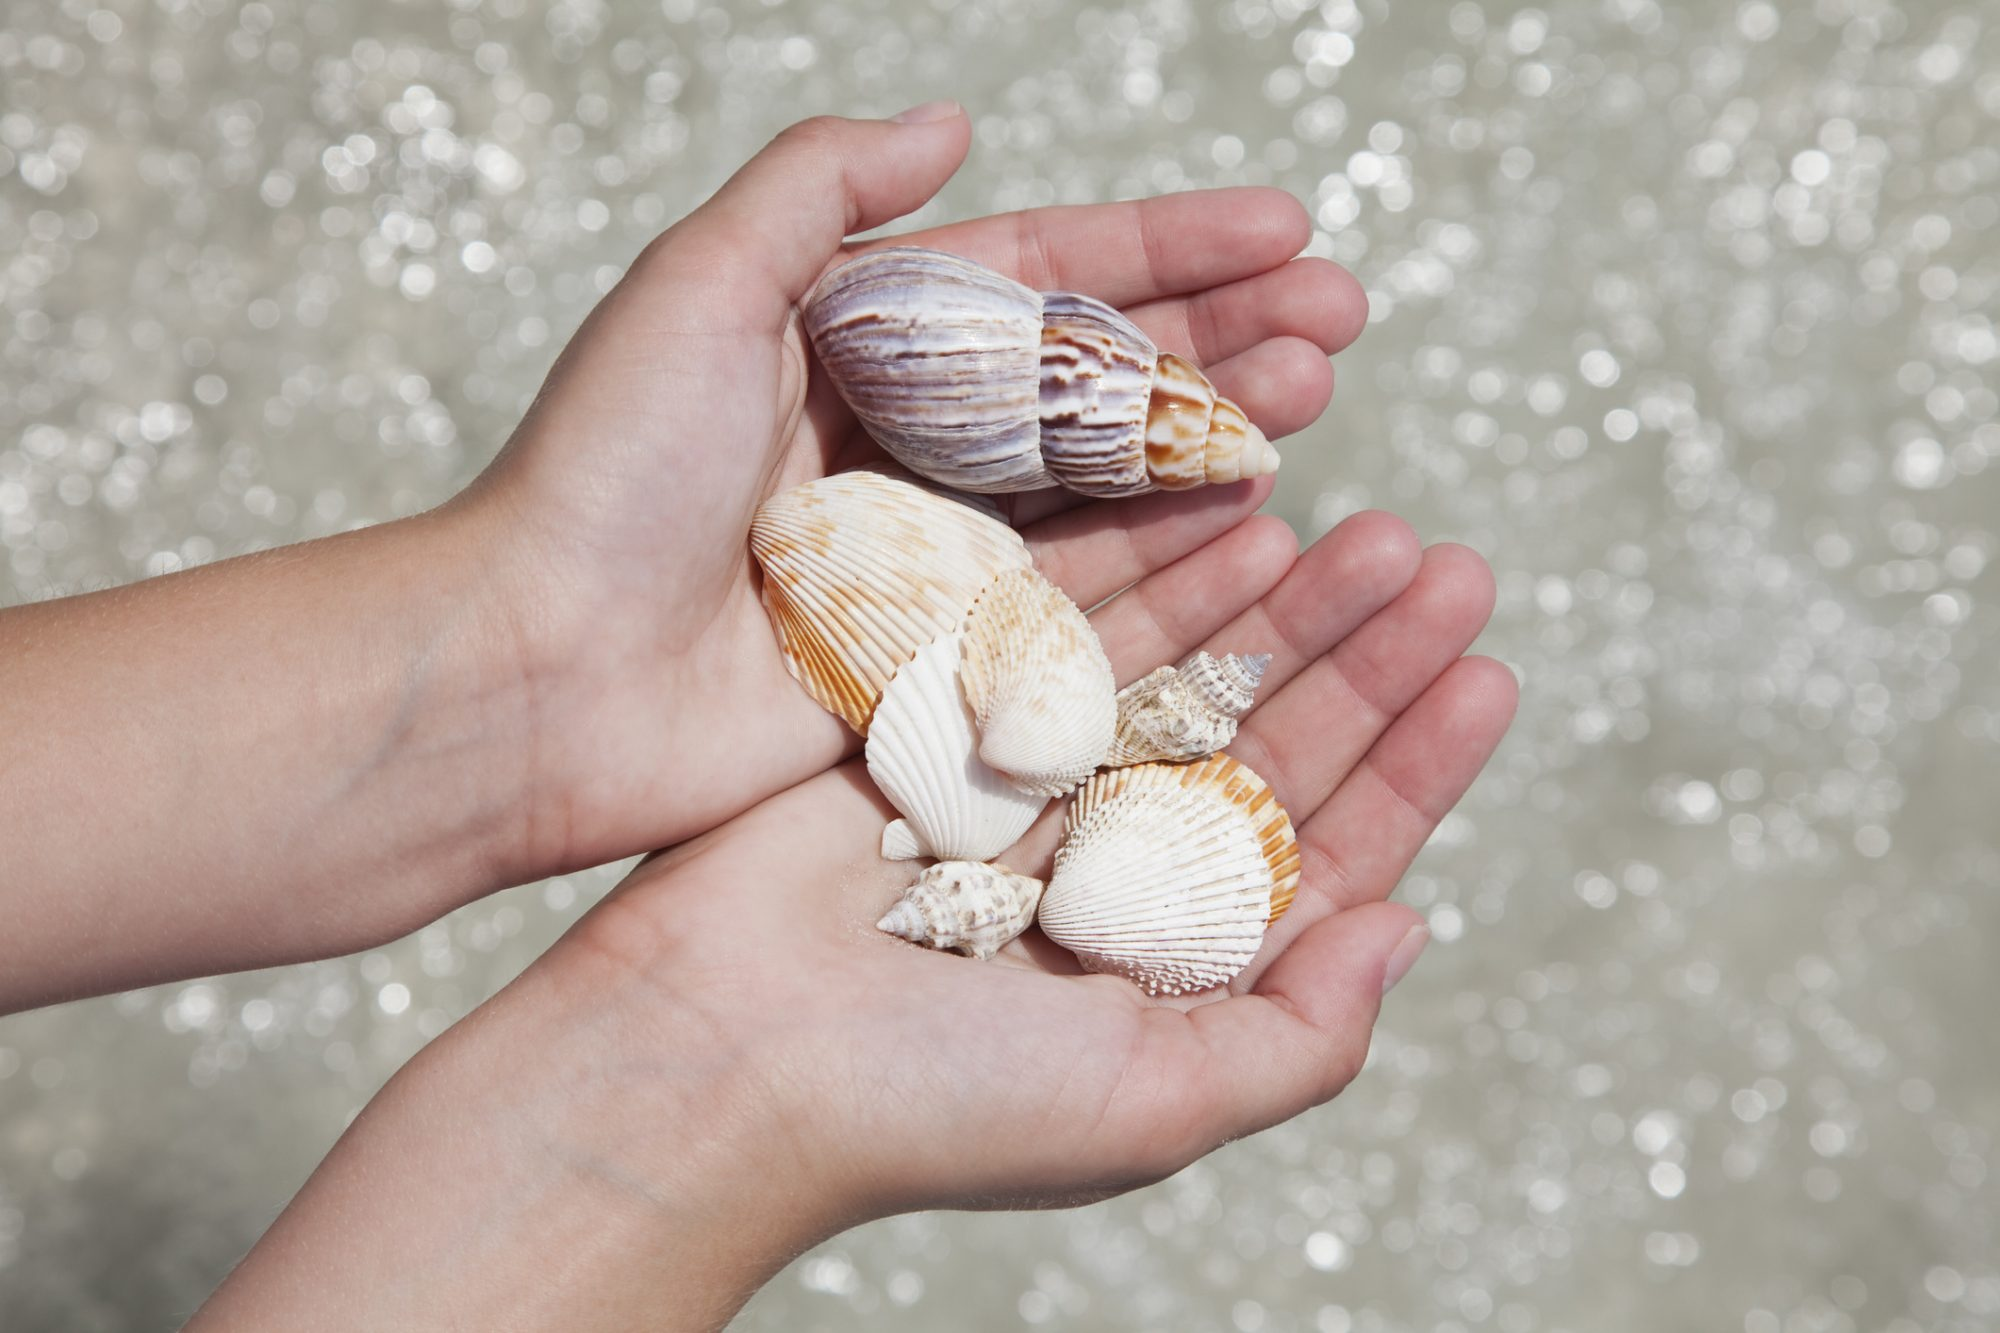 Holding Seashells at the Beach